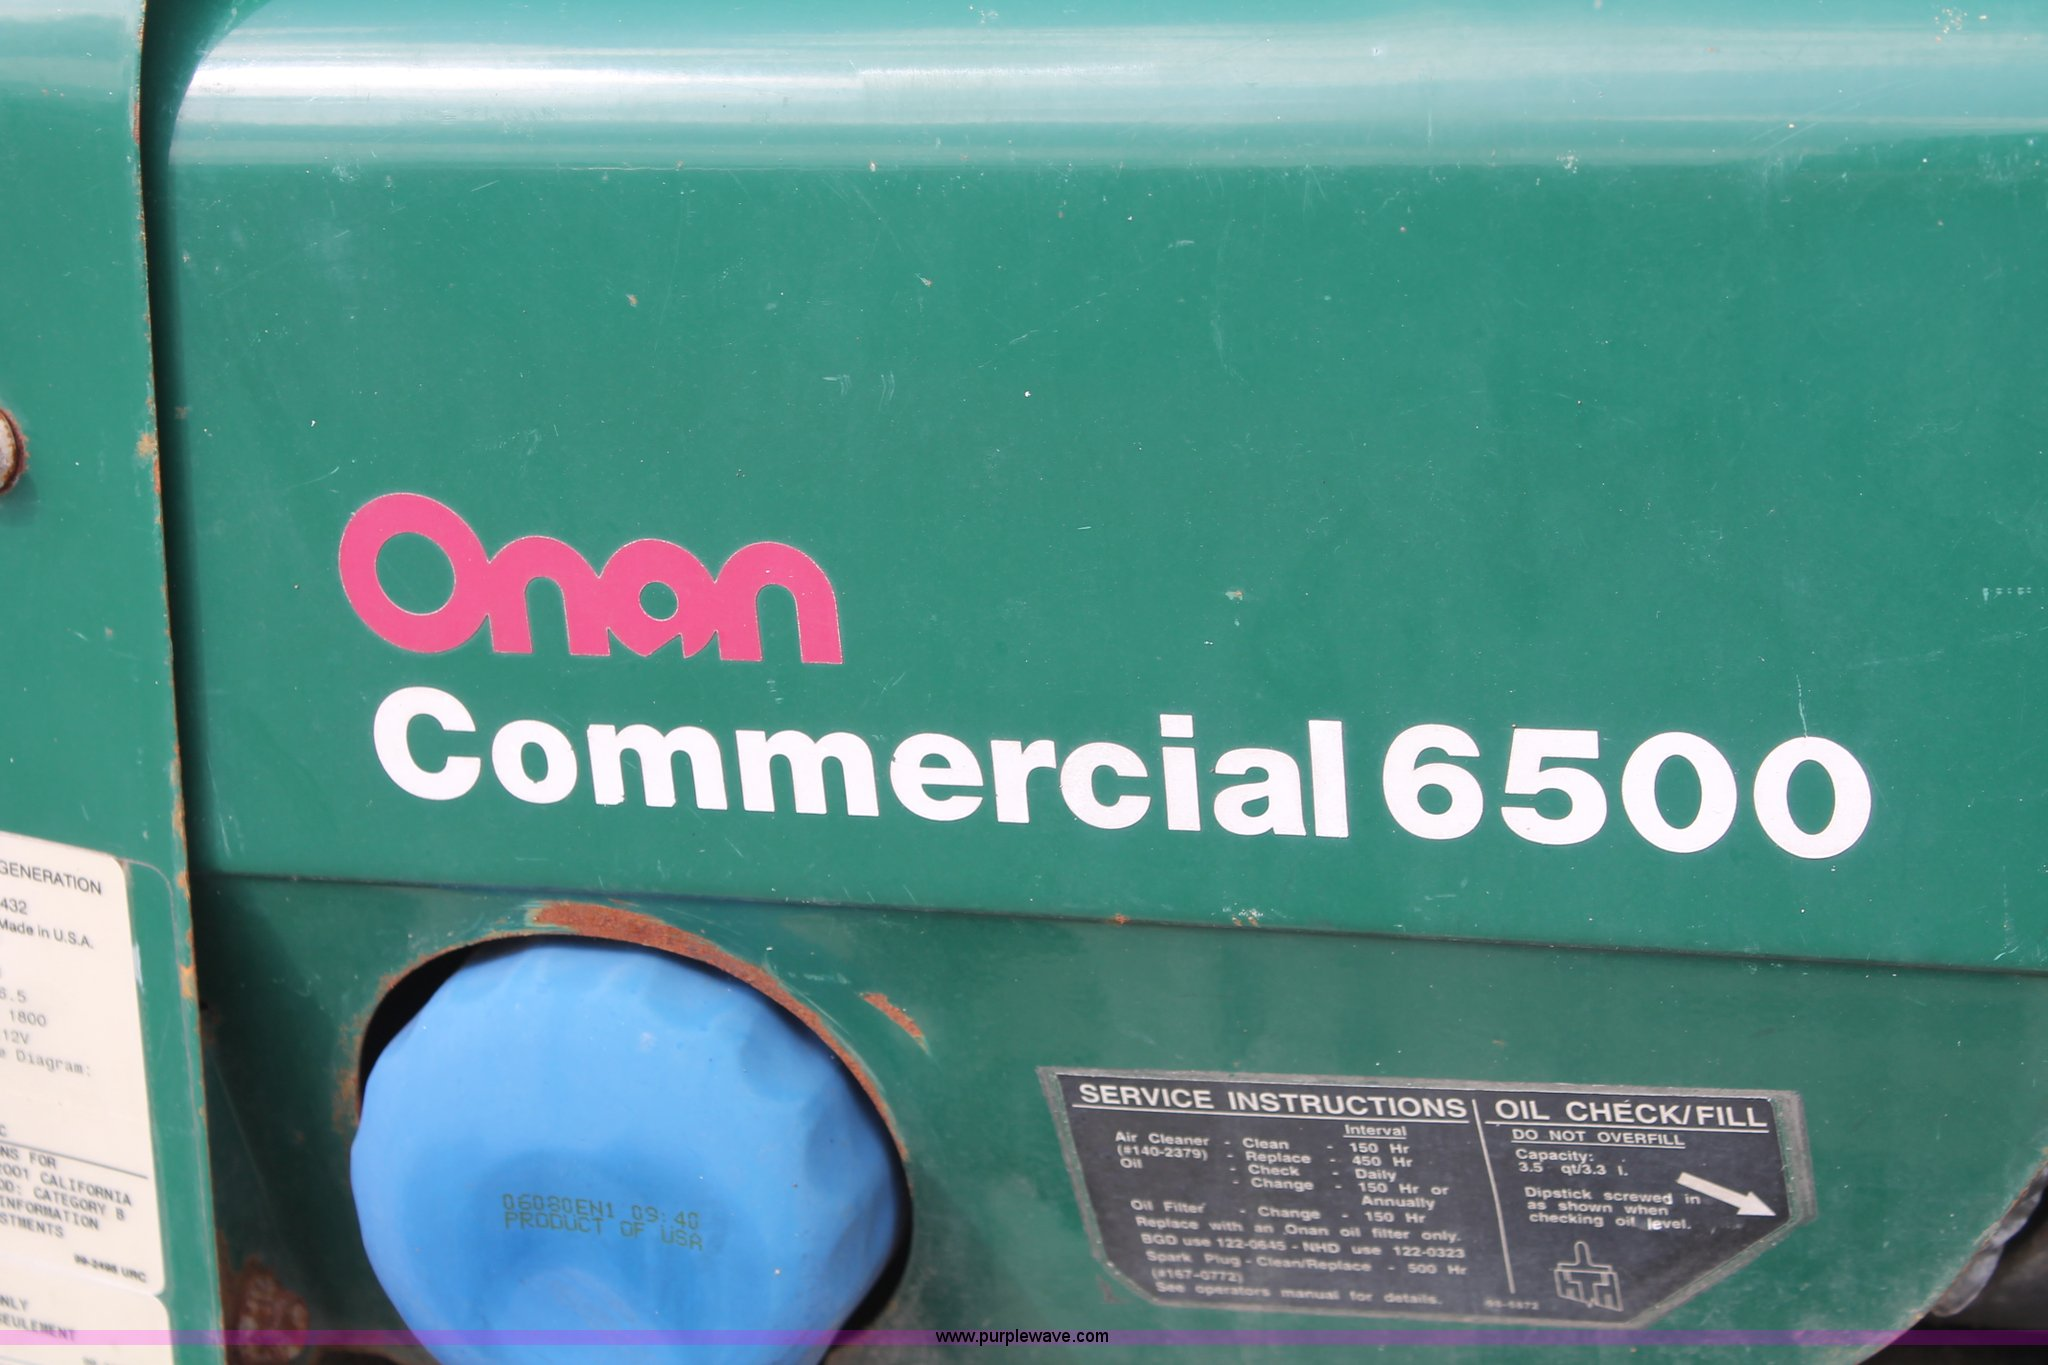 onan commercial 6500 engine manual